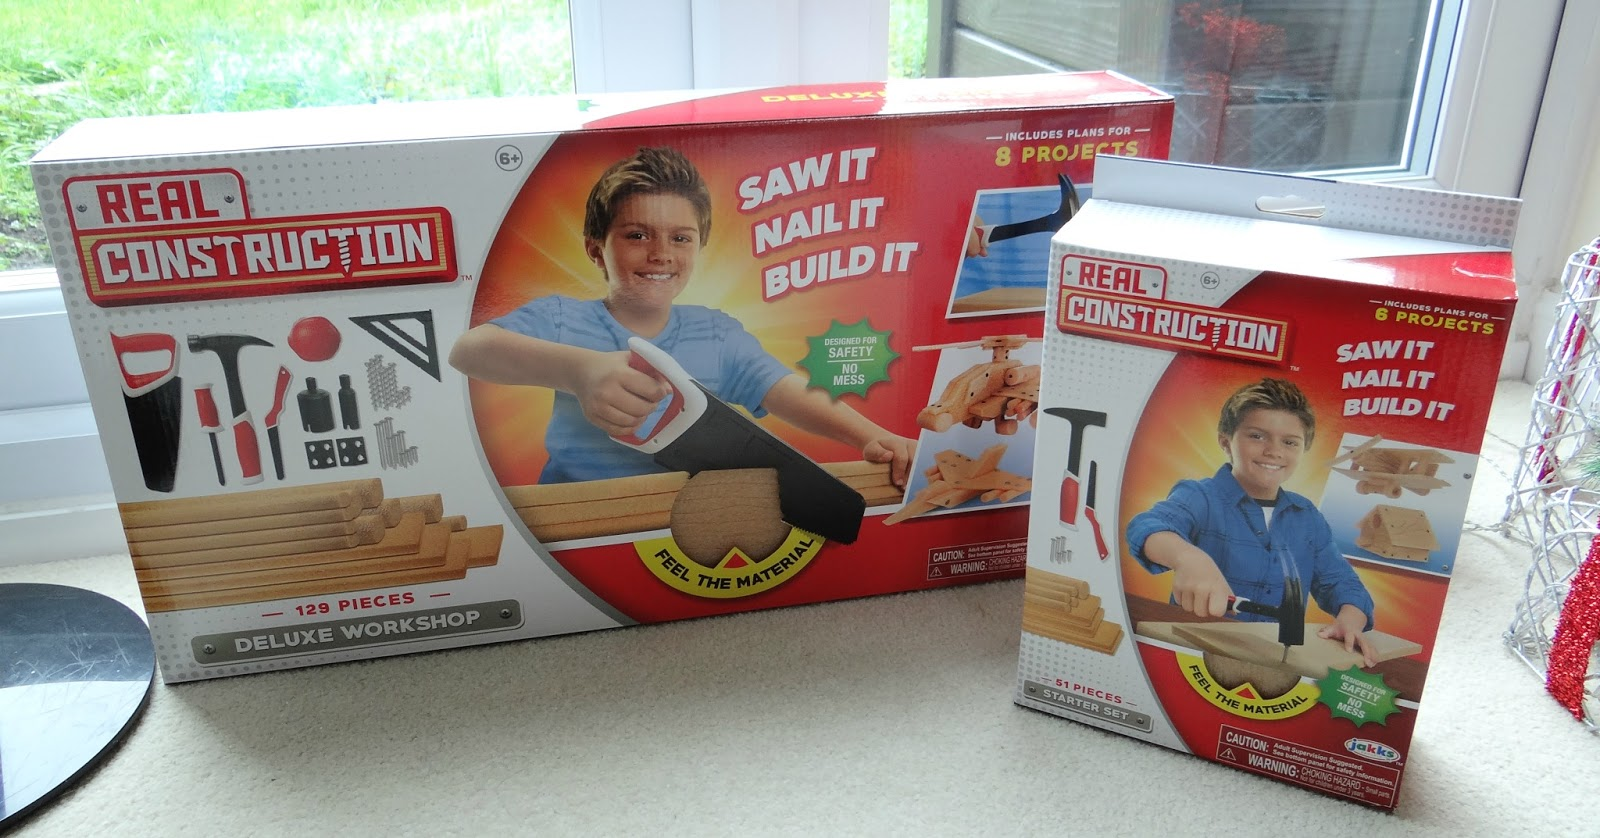 Real Construction, building tools for kids, Christmas gift for budding builders